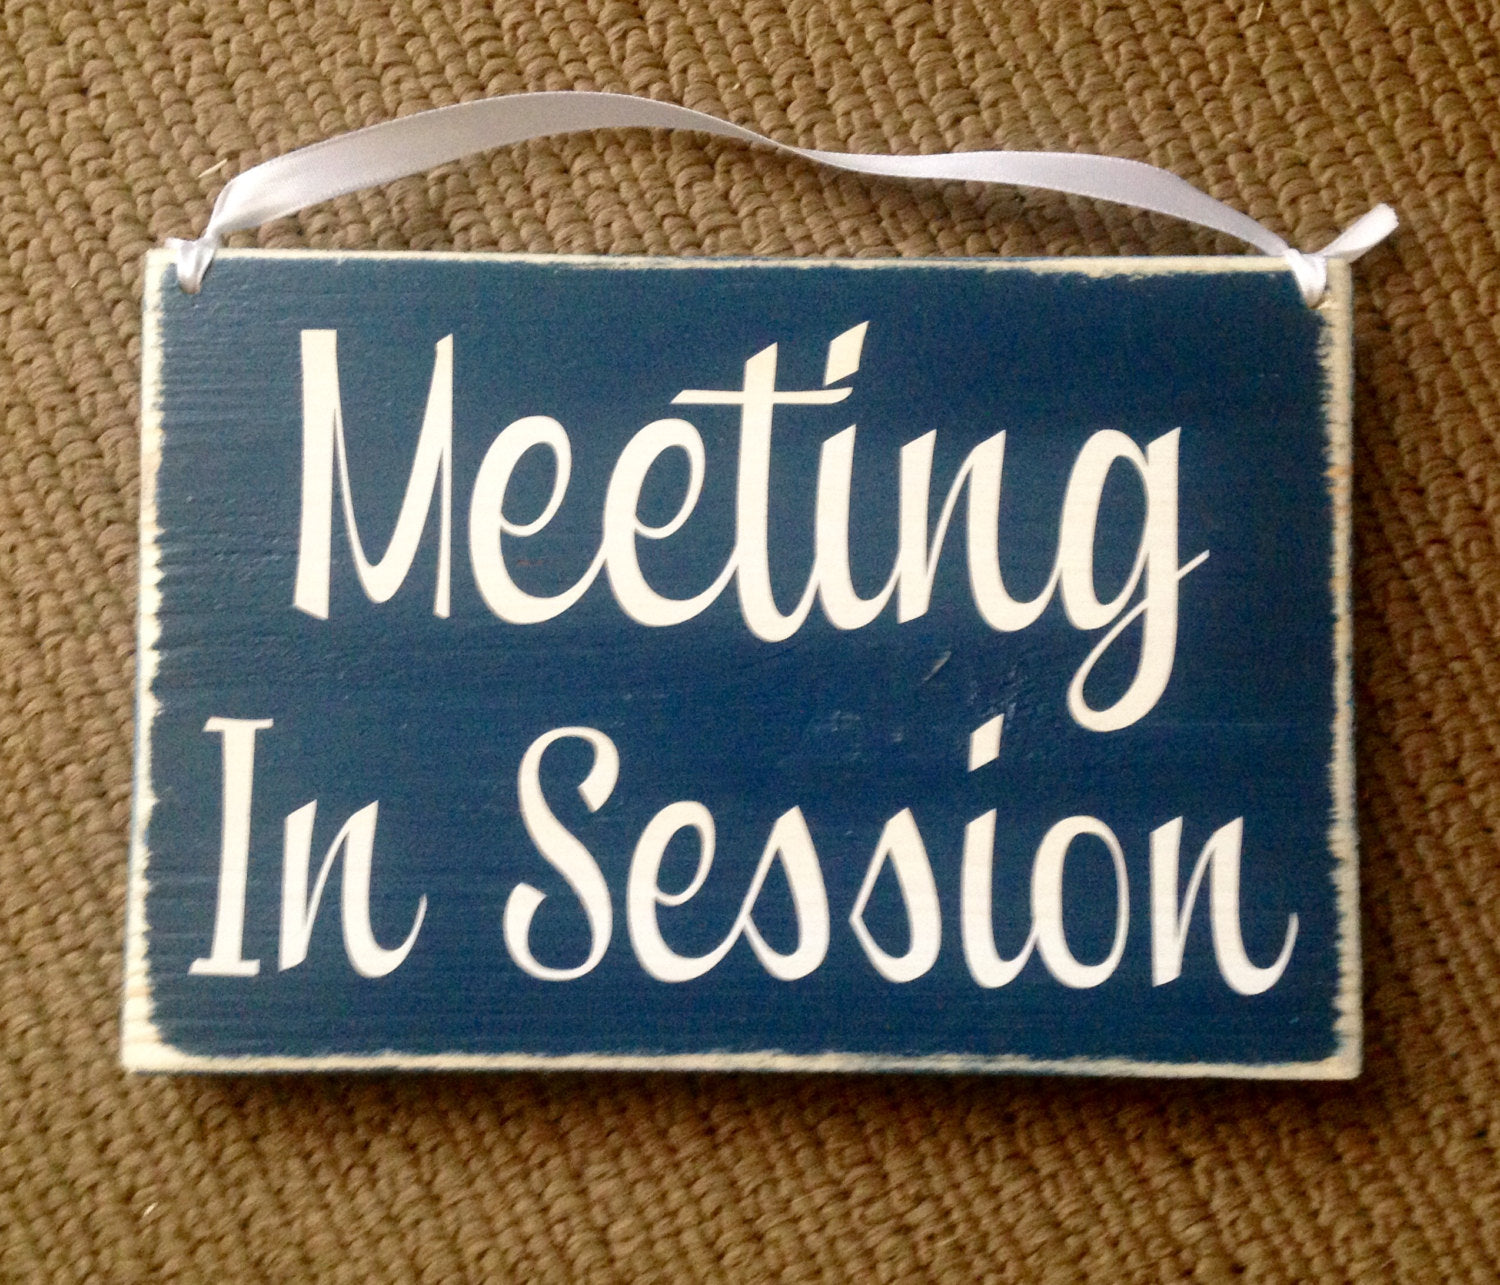 10x8 meeting in session wood business do not disturb sign designs